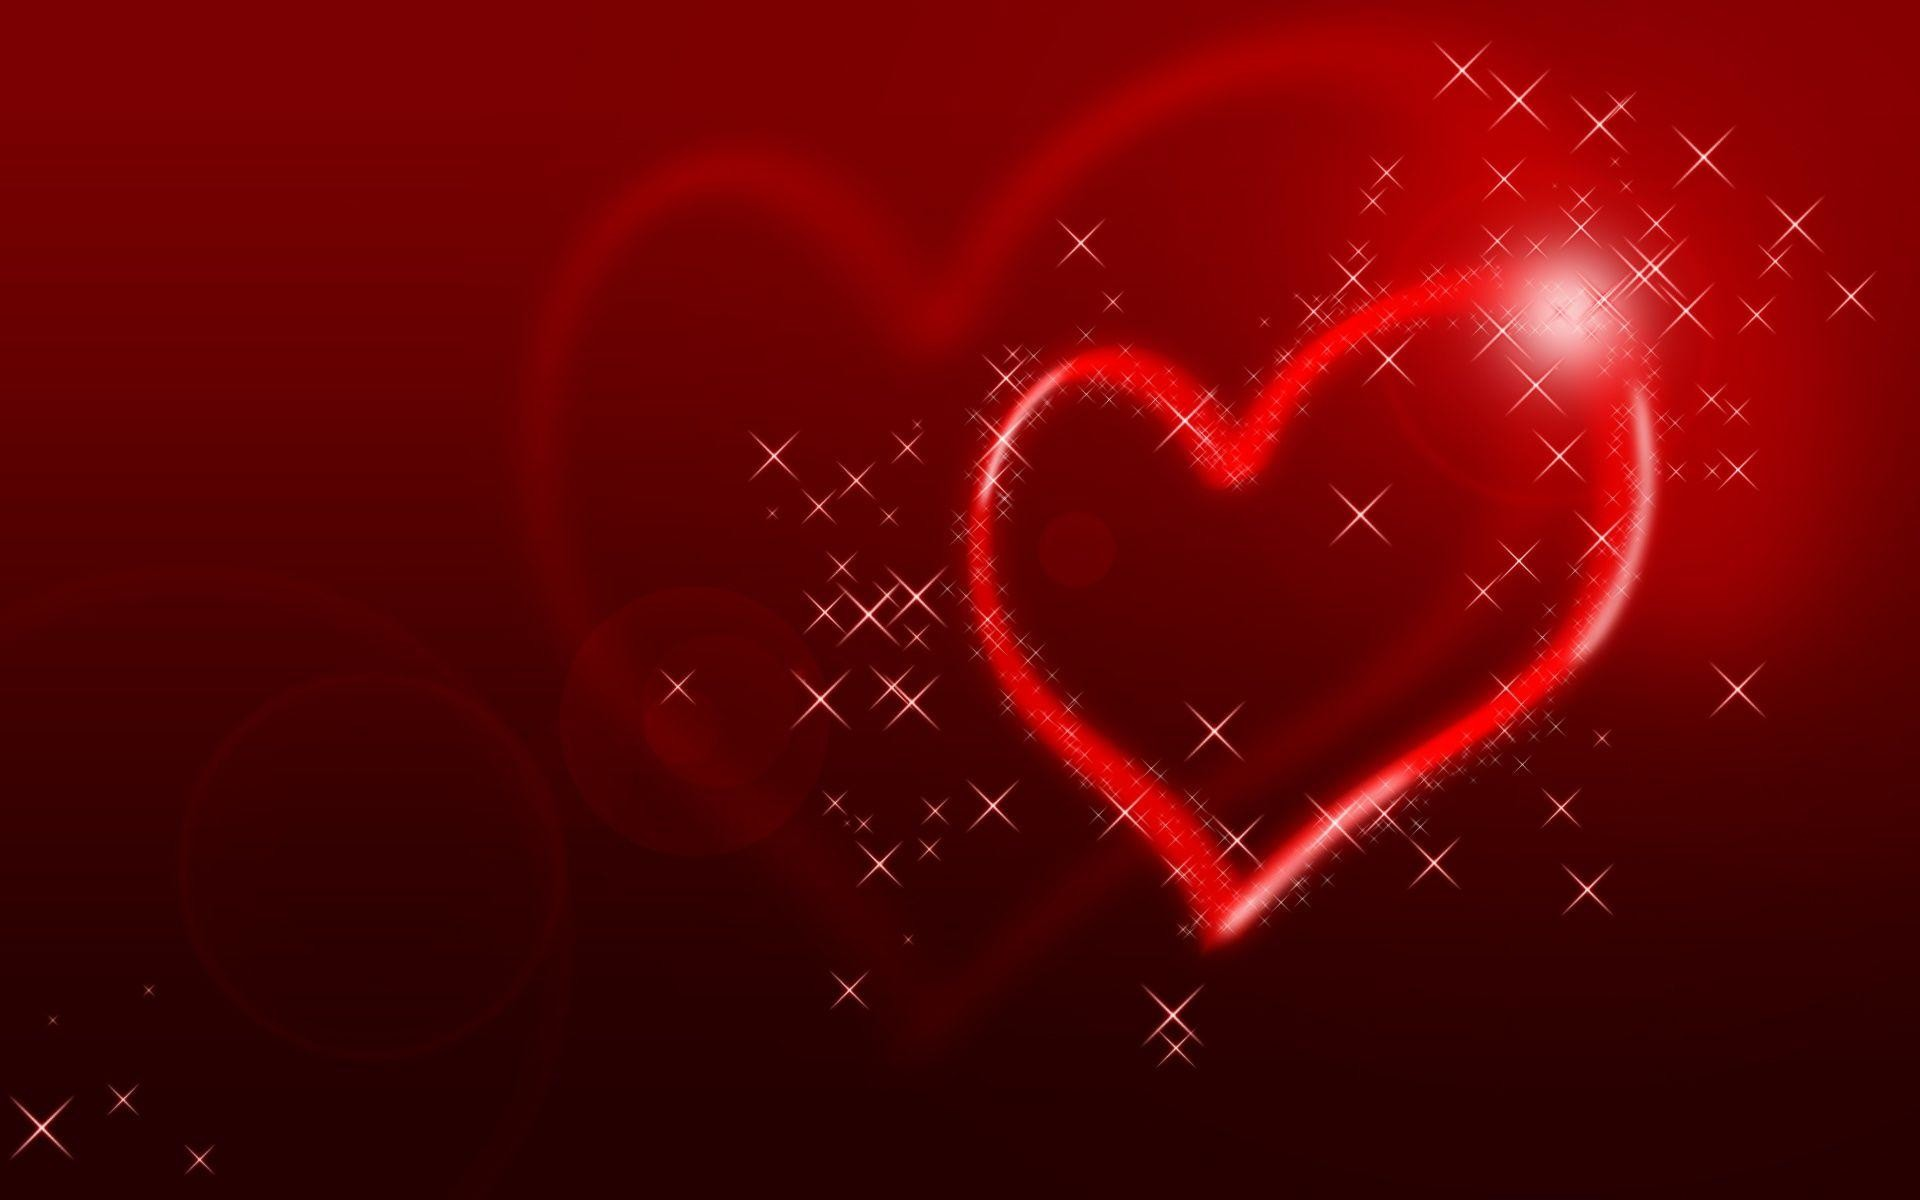 Wallpapers For > Red Hearts Wallpaper Background